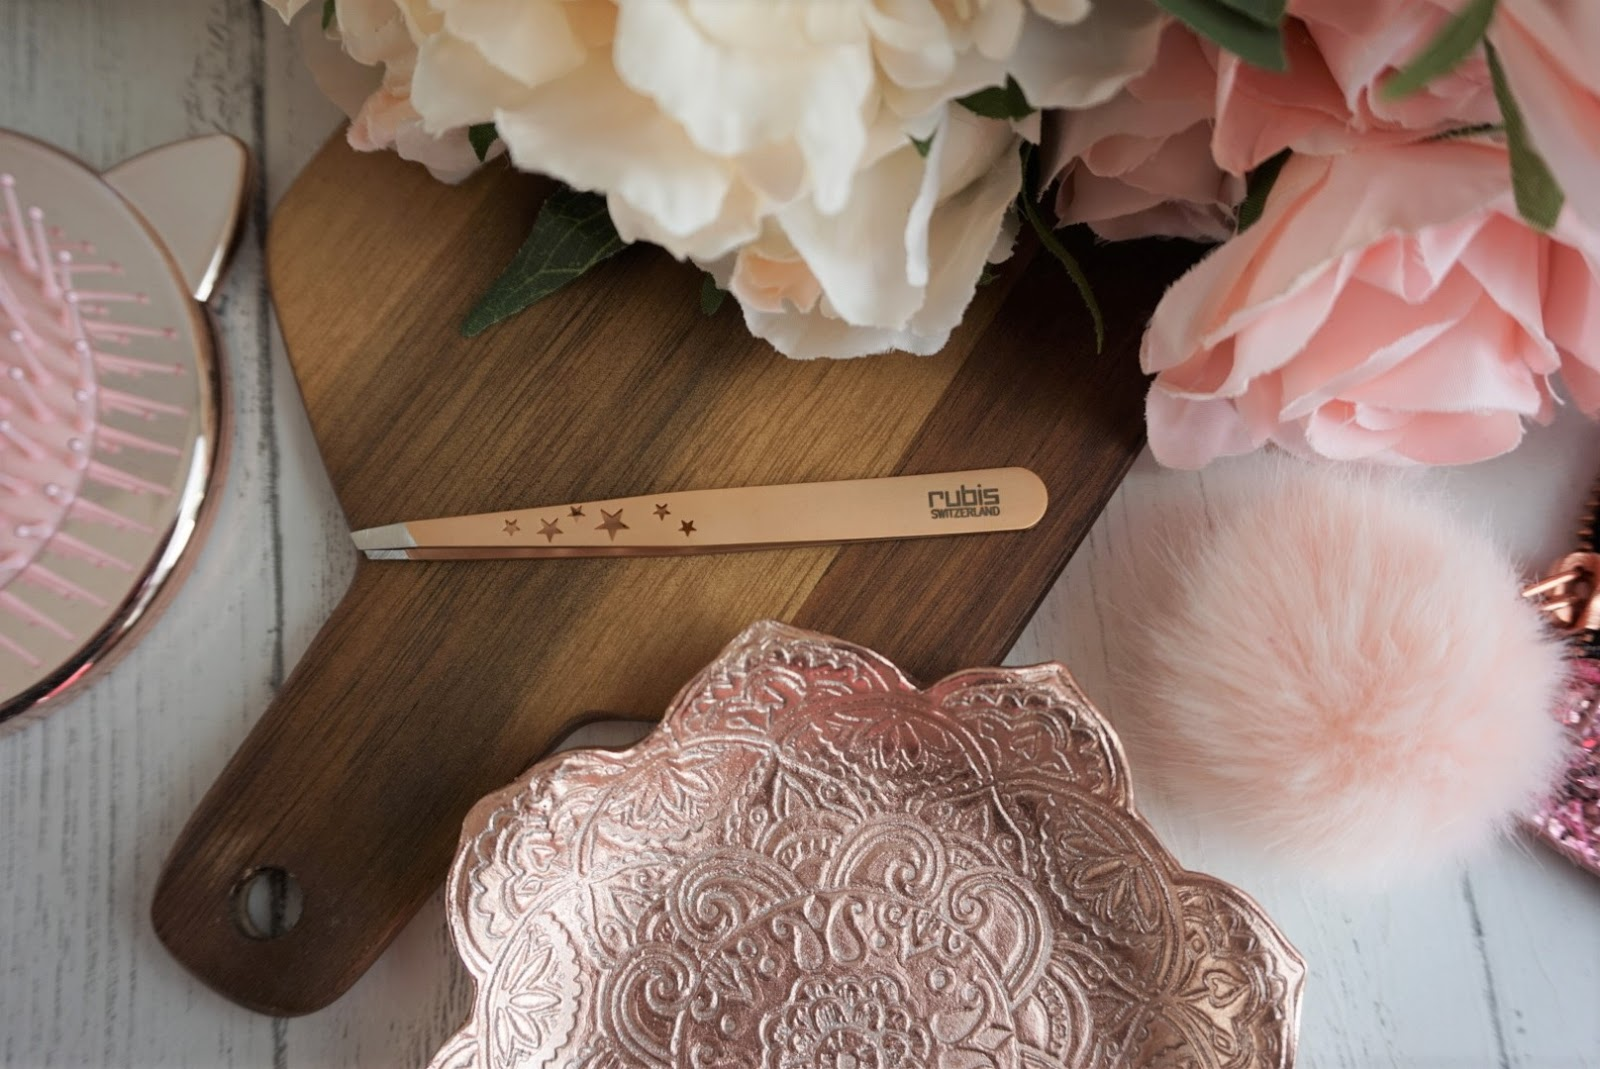 Rose Gold Rubis Tweezers